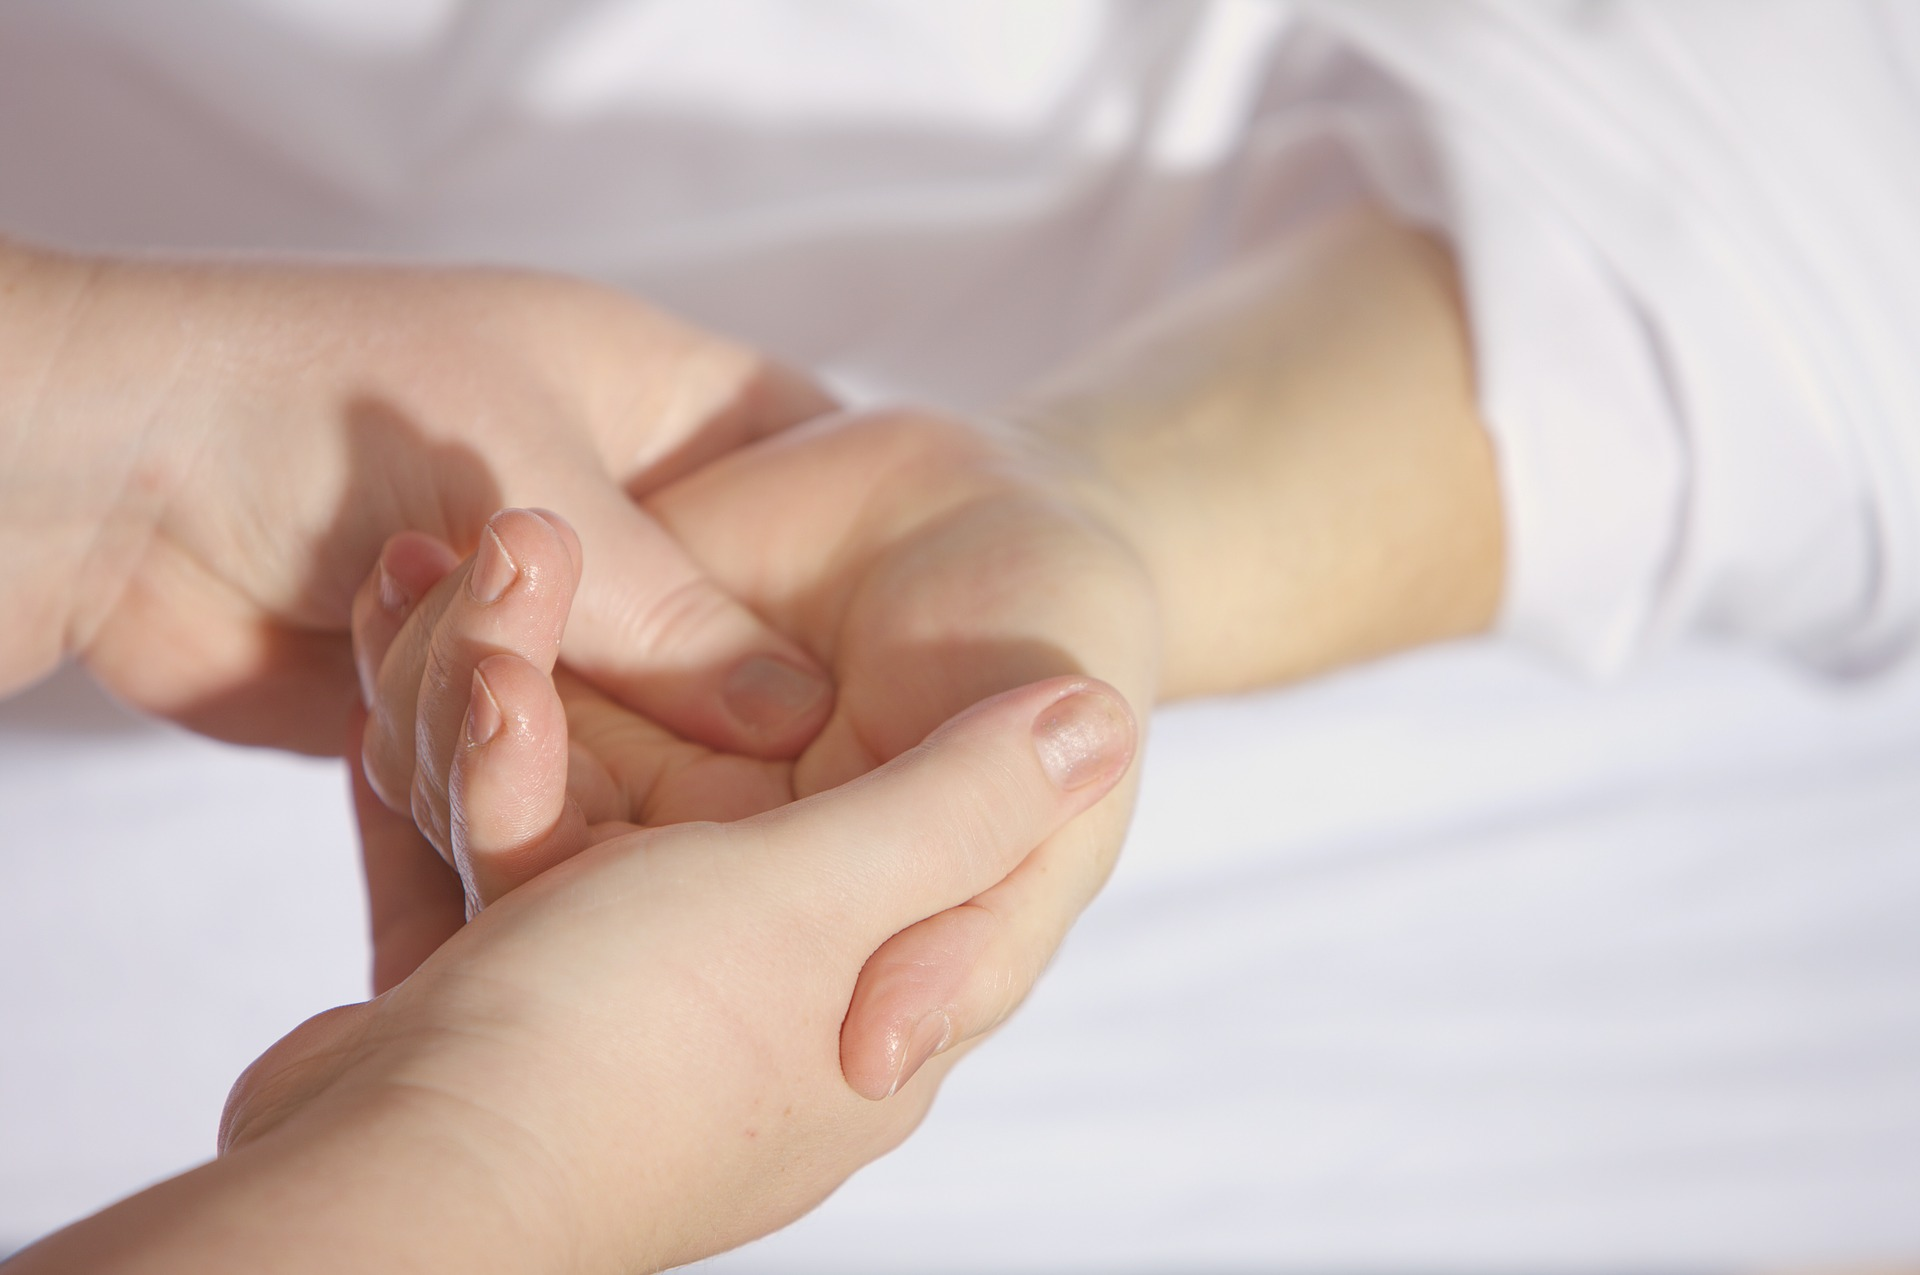 image of acupressure practitioner touching person's hand at pressure point